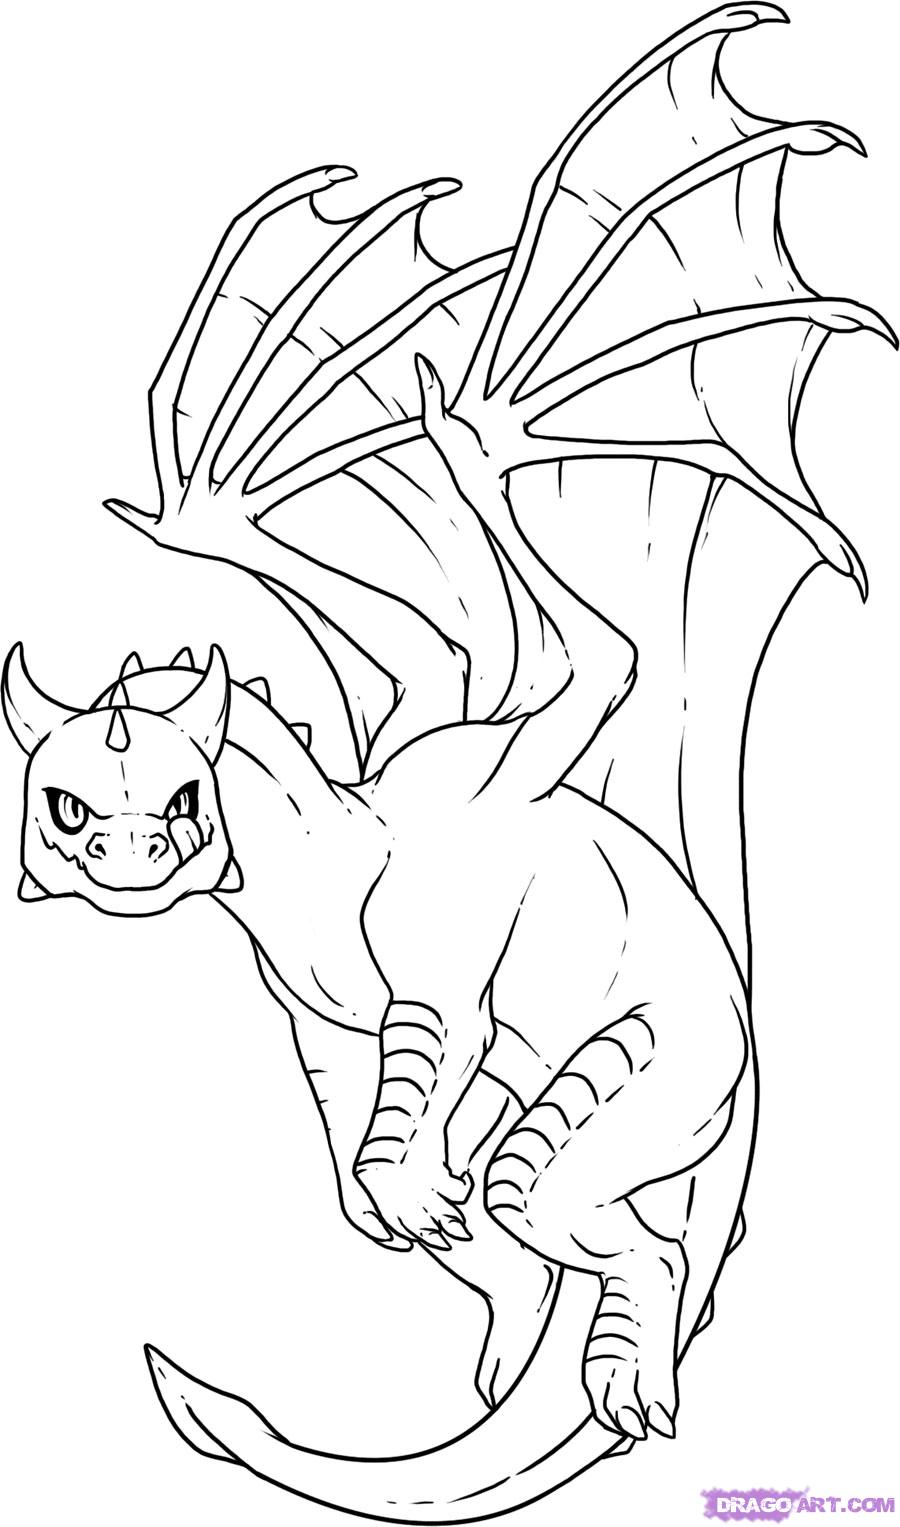 900x1527 Dragon Coloring Pages How To Draw Baby Dragon, Step By Step